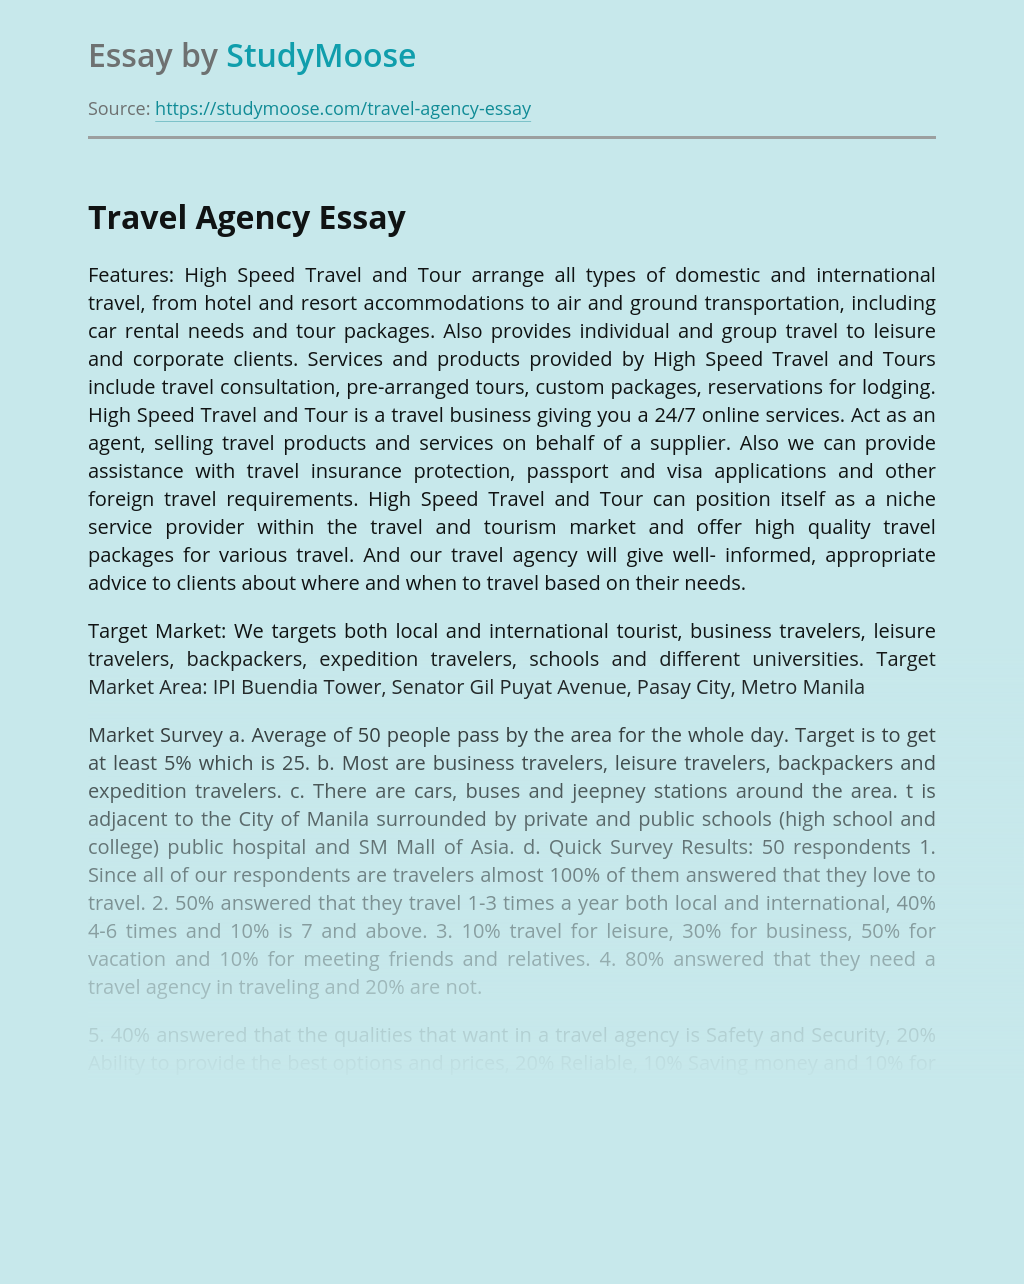 High Speed Travel and Tour Travel Agency Analysis